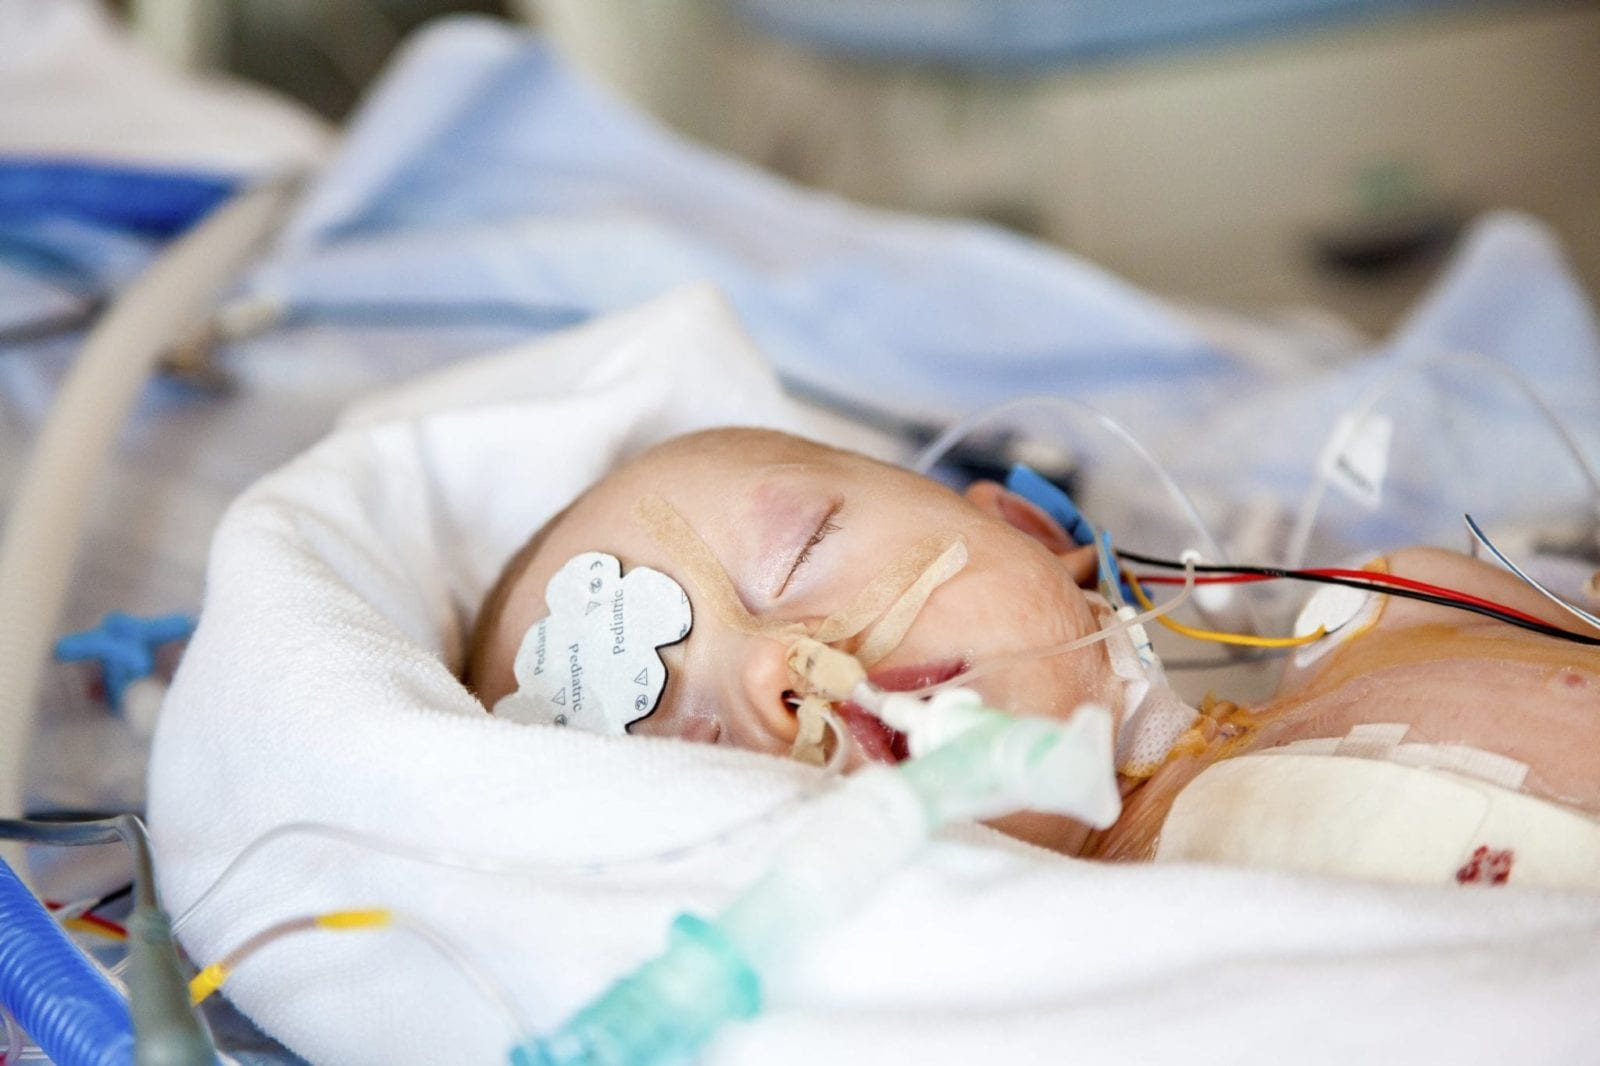 Injured At Birth - Goldwater Law Firm